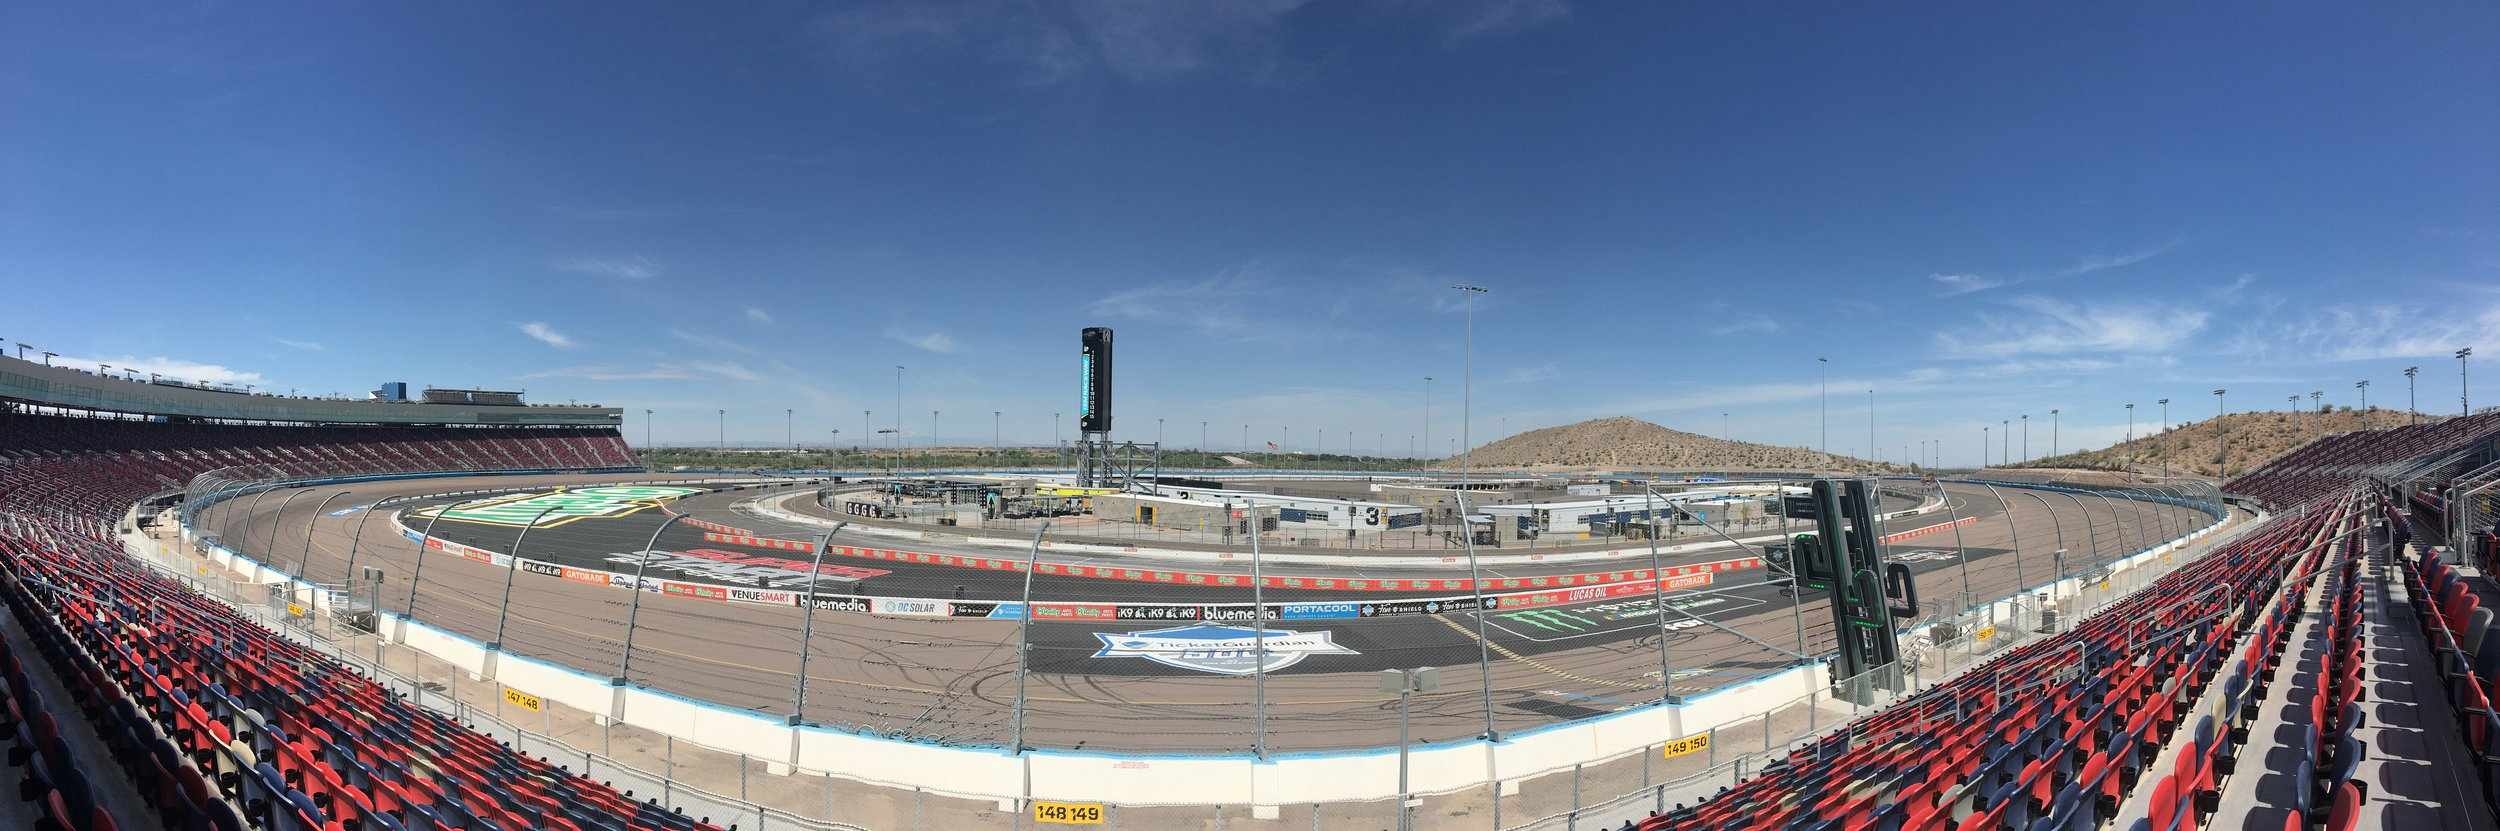 ISM speedway in Tolleson, AZ at the far southwest side of Phoenix.